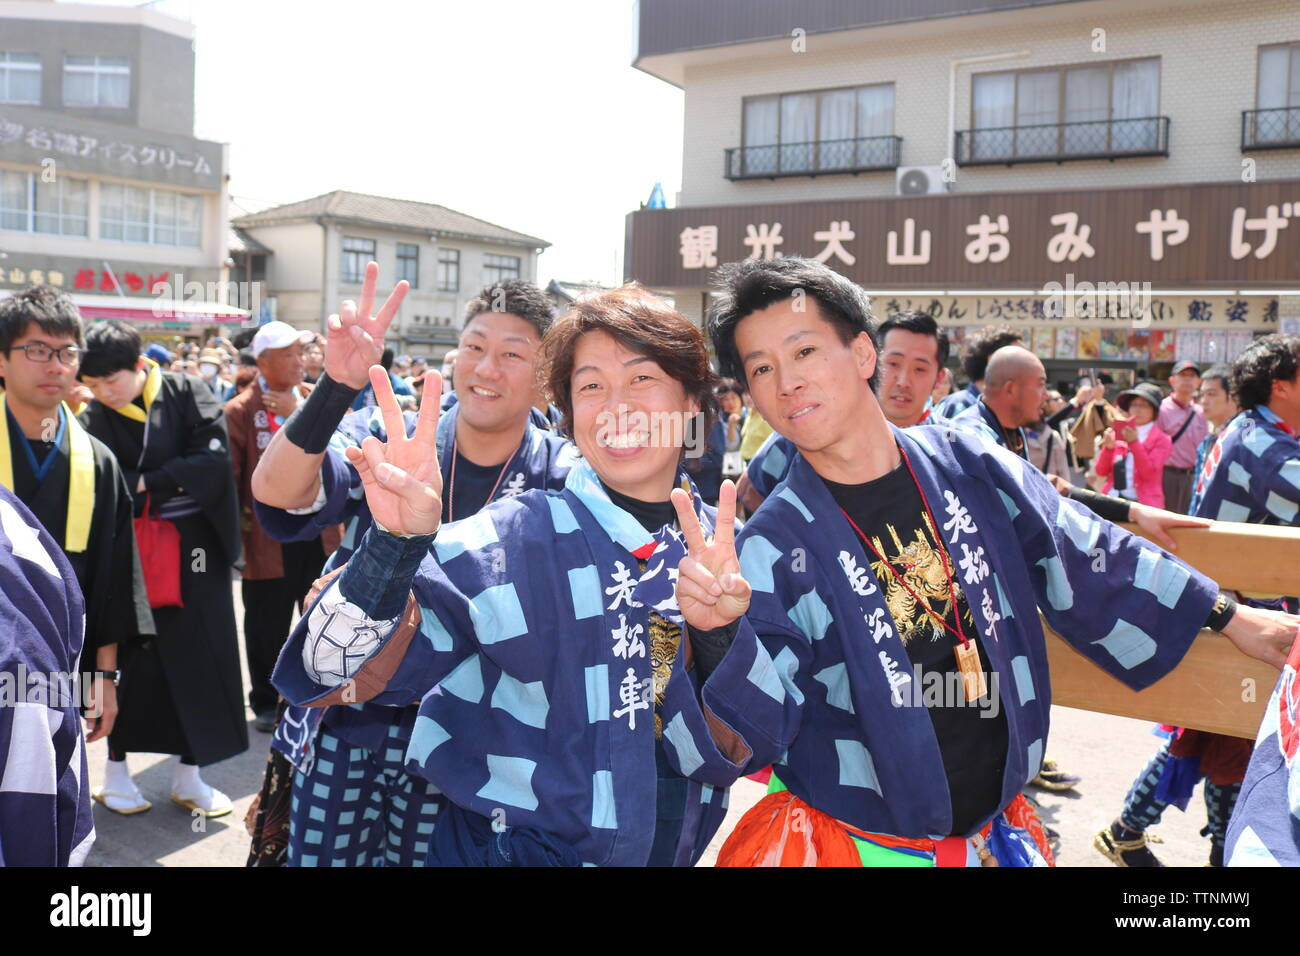 Young men celebrating and laughing after pushing floats in the Inuyama festival showing the two fingered peace gesture Stock Photo